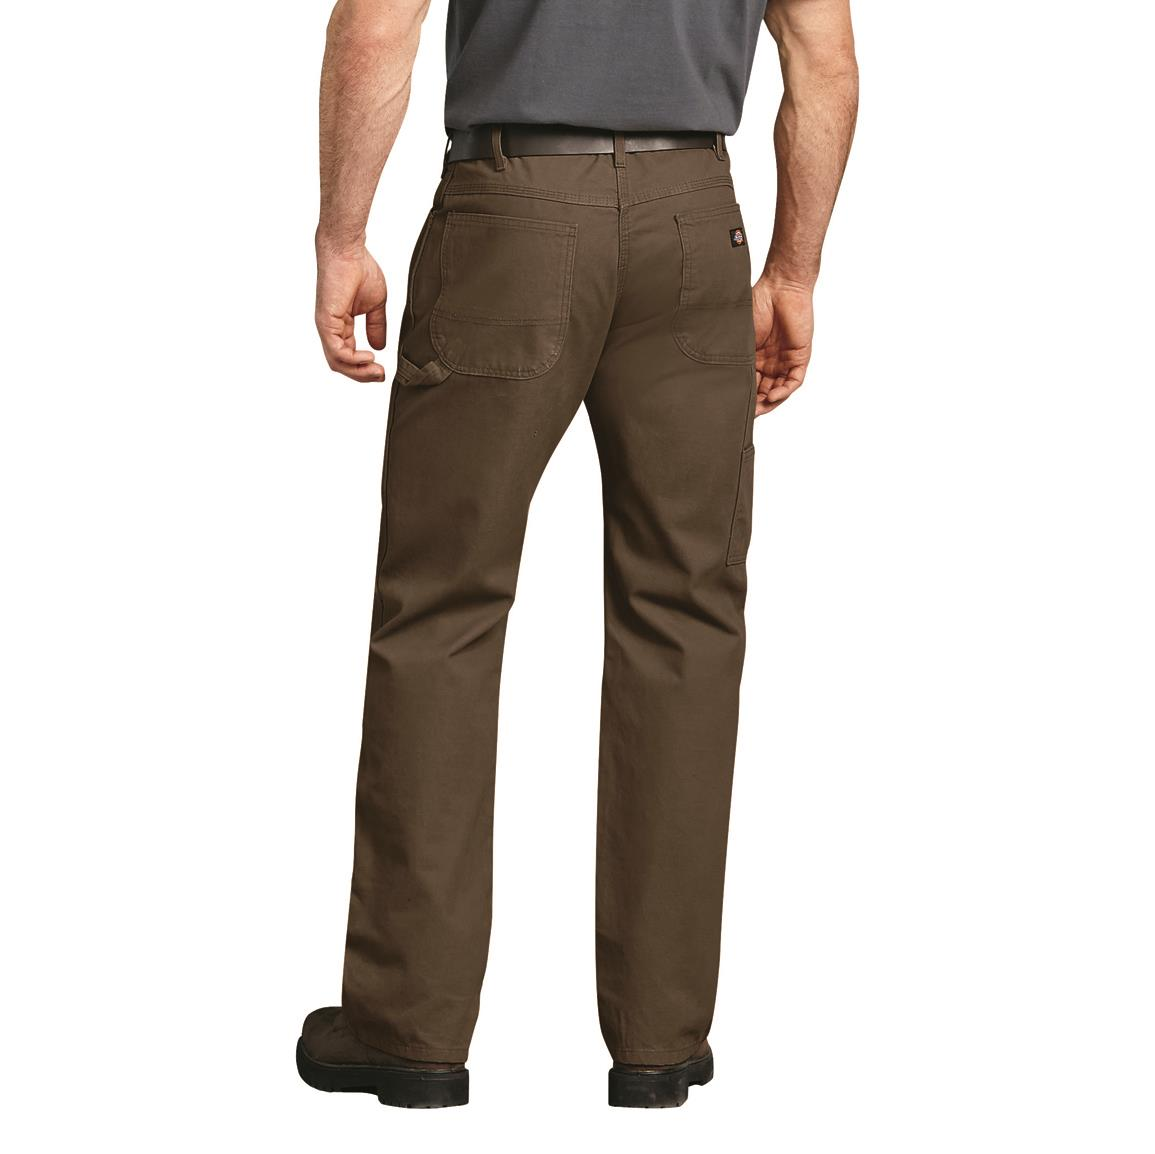 c34f348505a5b Dickies Men's Relaxed Fit Straight Leg Carpenter Duck Jeans, Brown Duck ·  Back view, Brown Duck · Back view, Timber